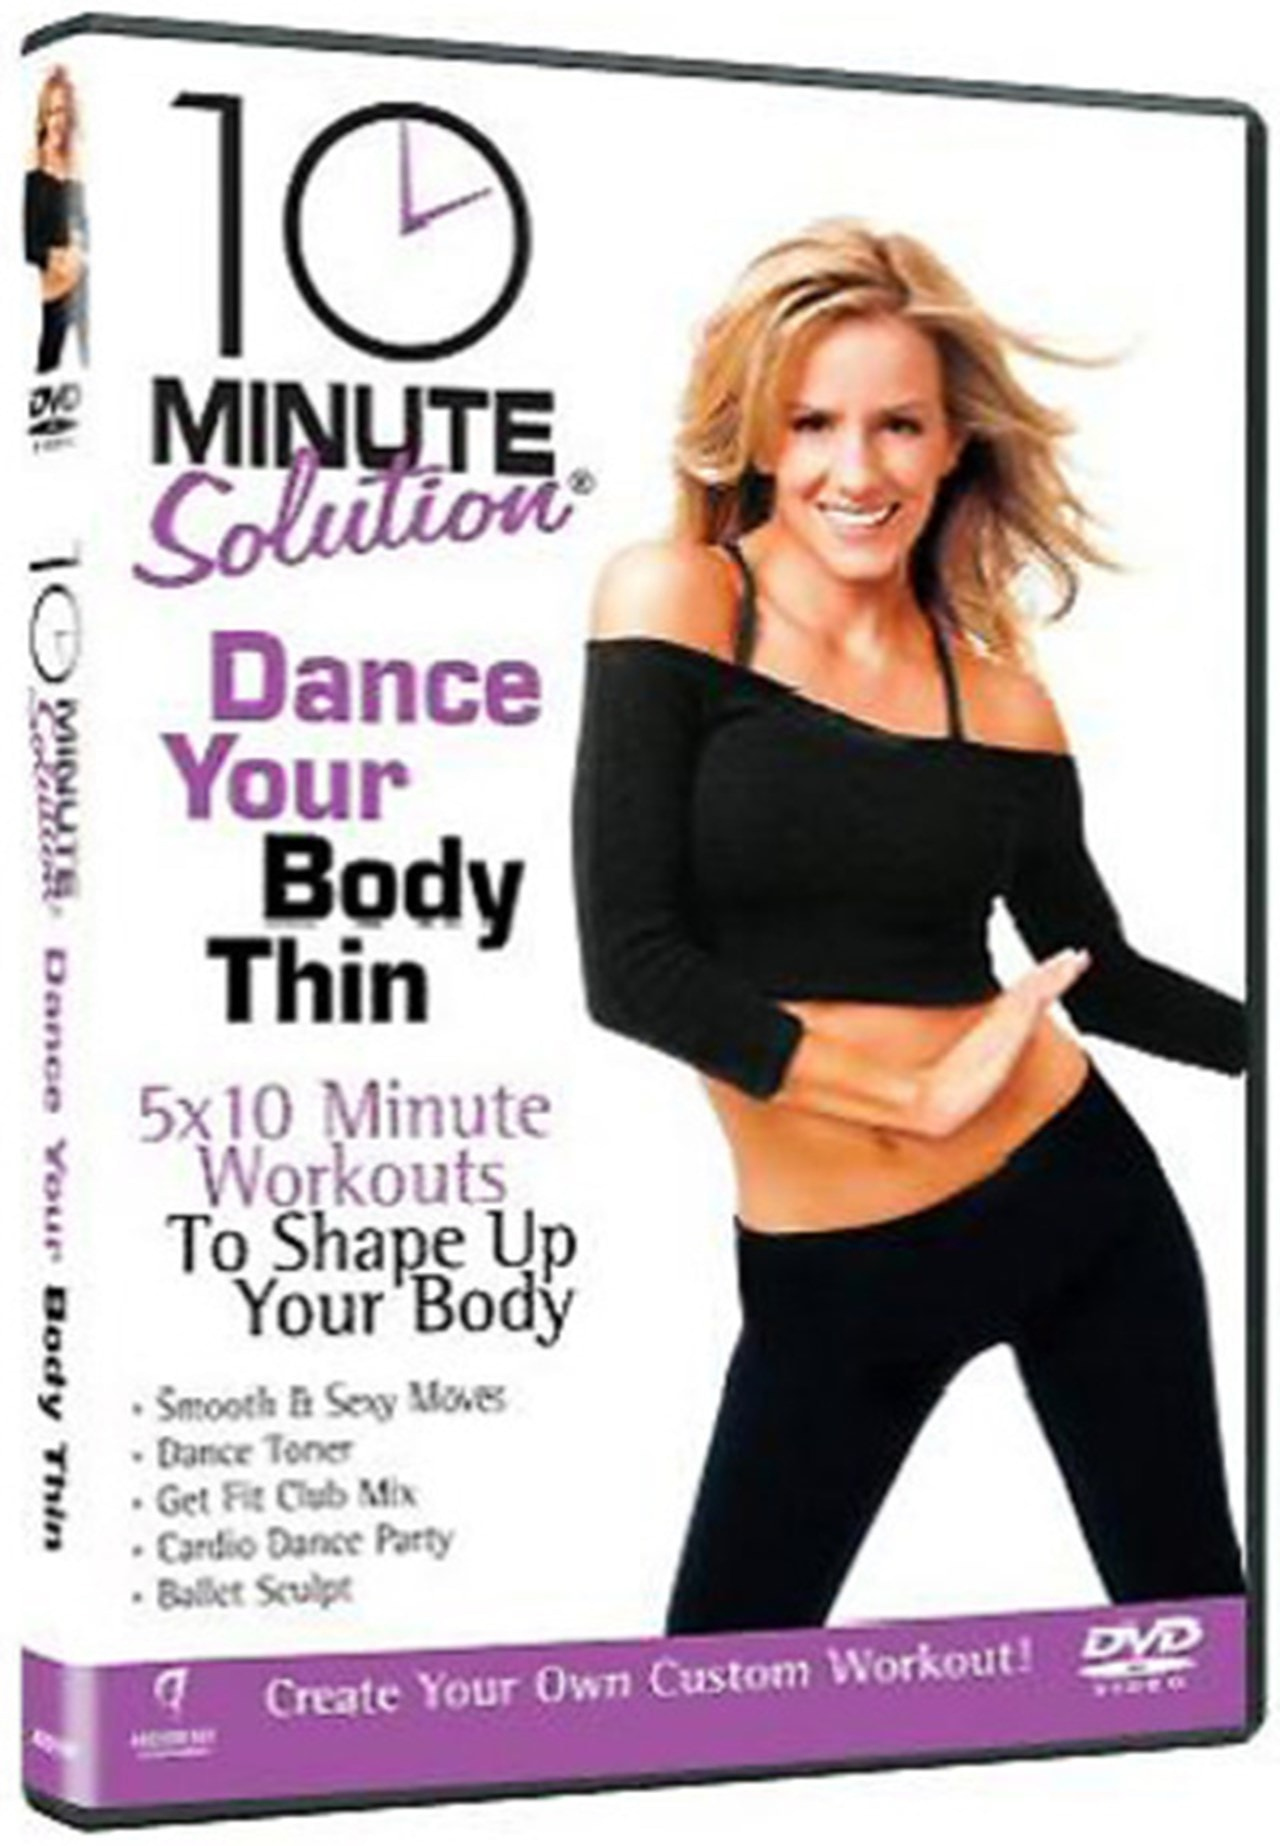 10 Minute Solution: Dance Your Body Thin - 1